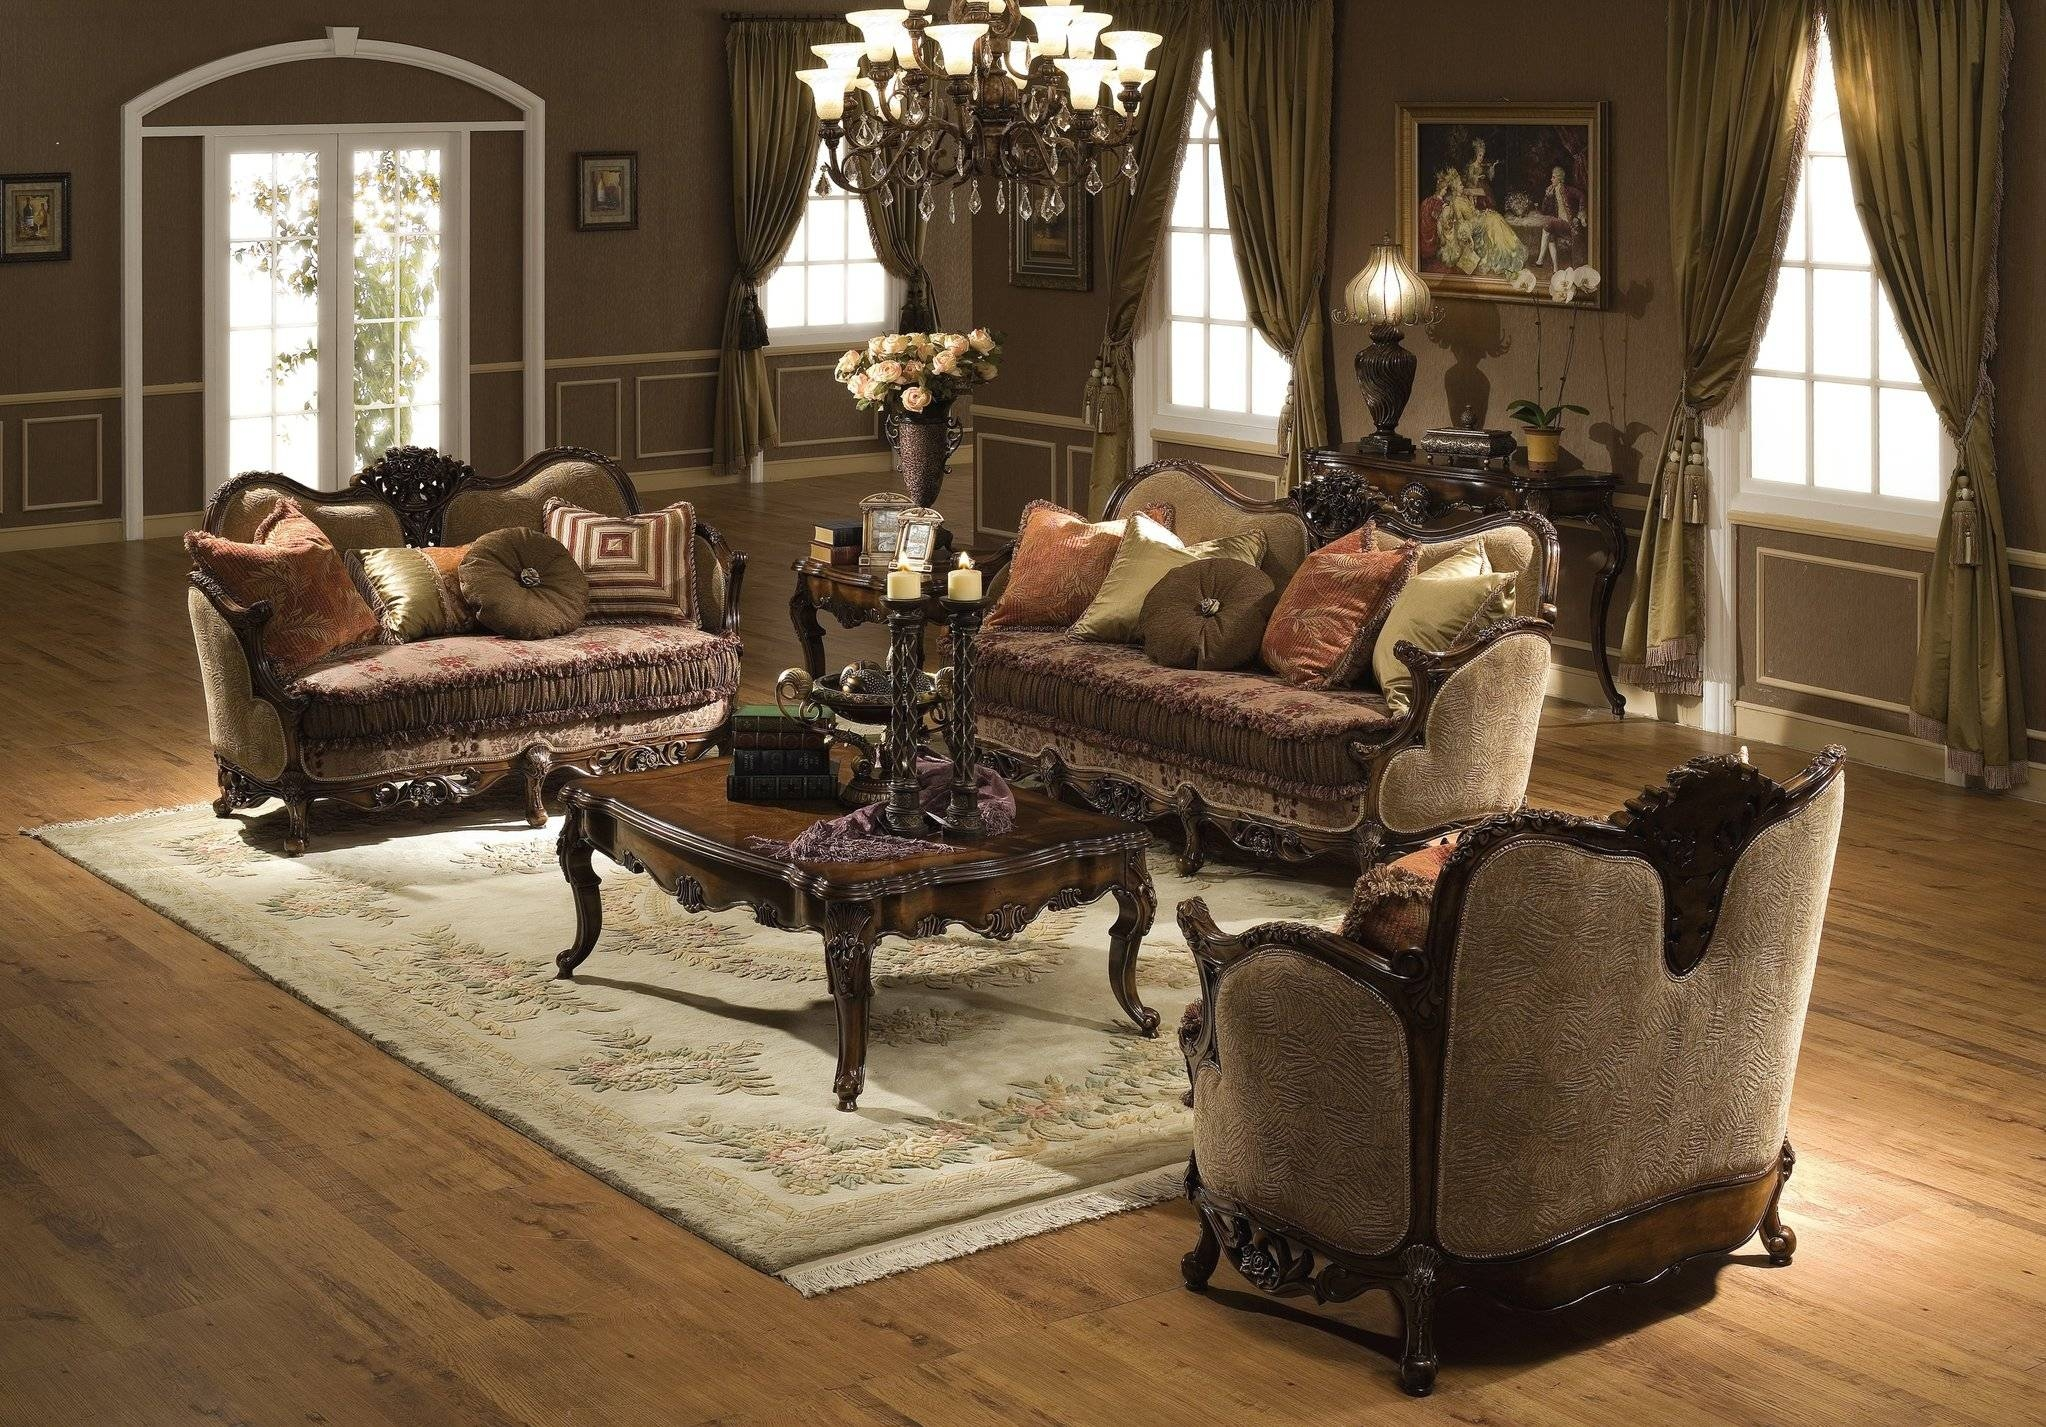 Living Room Furniture | Living Room Sets | Sofas | Couches intended for Traditional Sectional Sofas Living Room Furniture (Image 12 of 25)